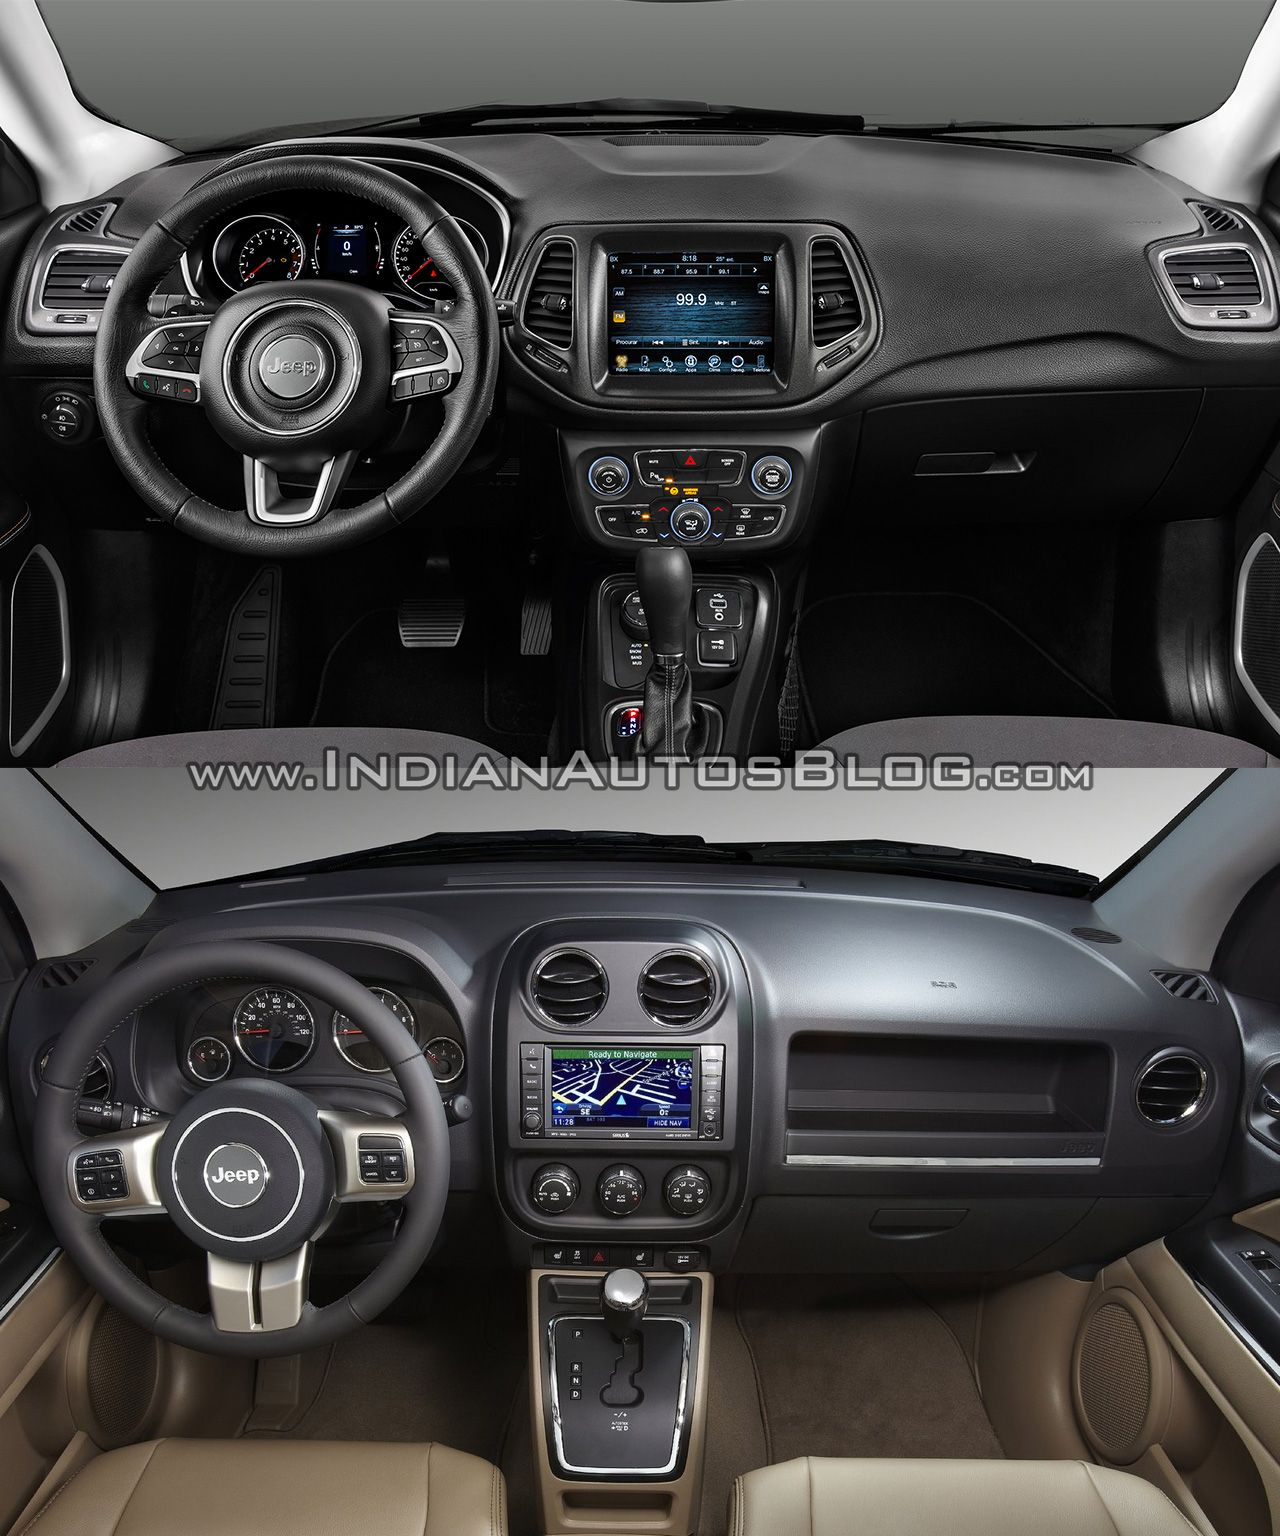 2017 Jeep Compass Vs 2011 Jeep Compass In Images Carros Auto Motos